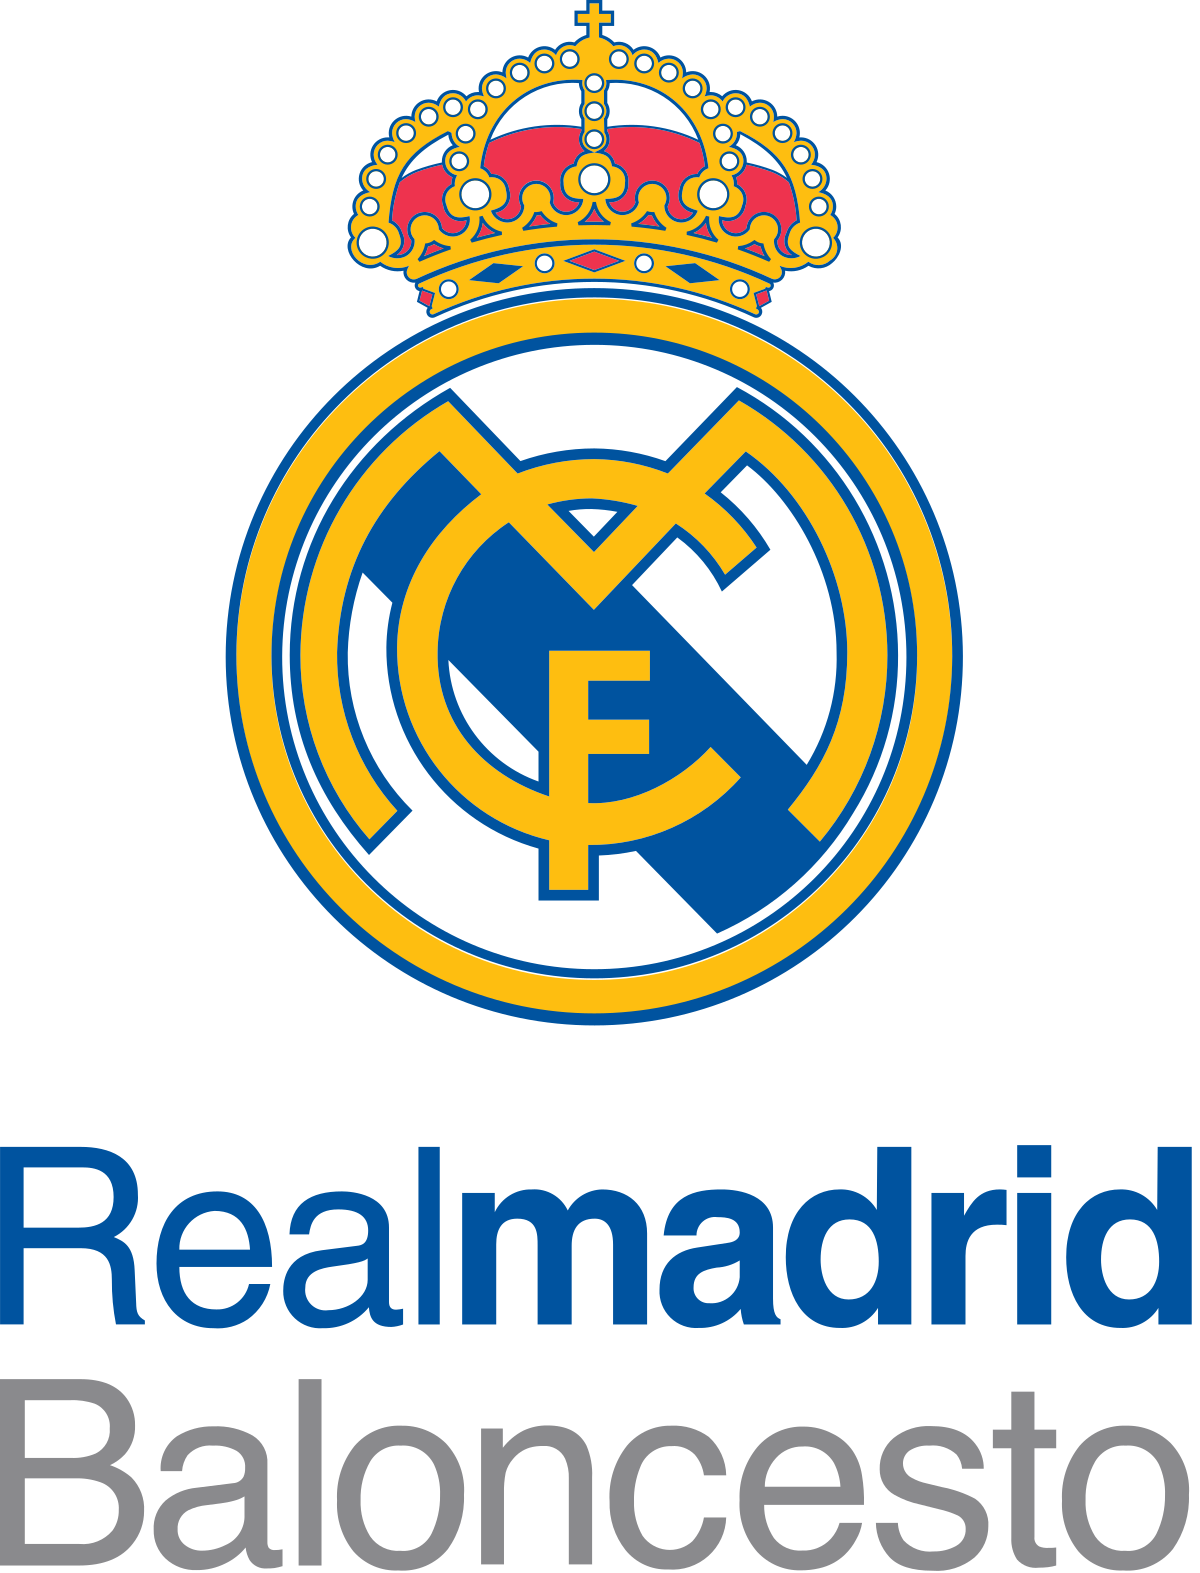 real madrid logo, real madrid baloncesto wikipedia #28350